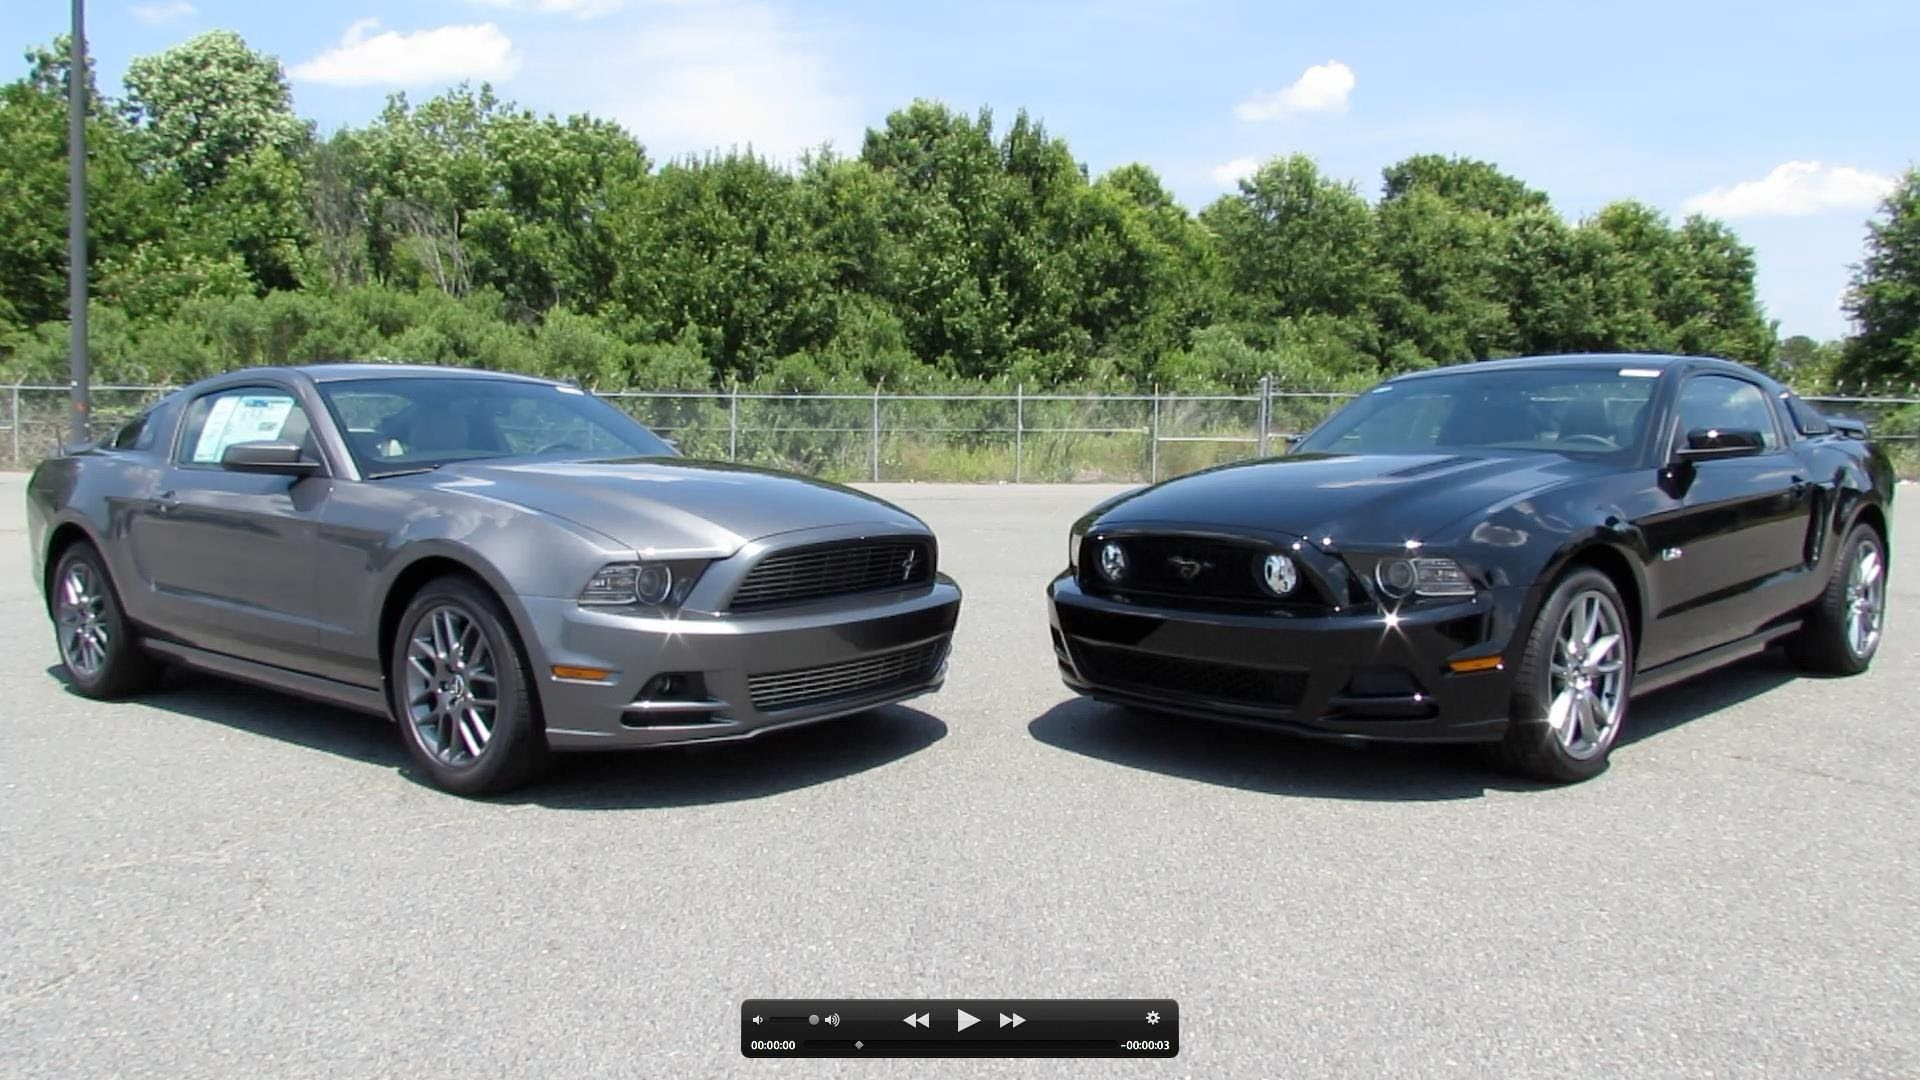 2014 ford mustang gt 5 0 gallery of modified ford mustang gt 2014 reviews and specs dream garage pinterest 2014 ford mustang ford mustang gt and